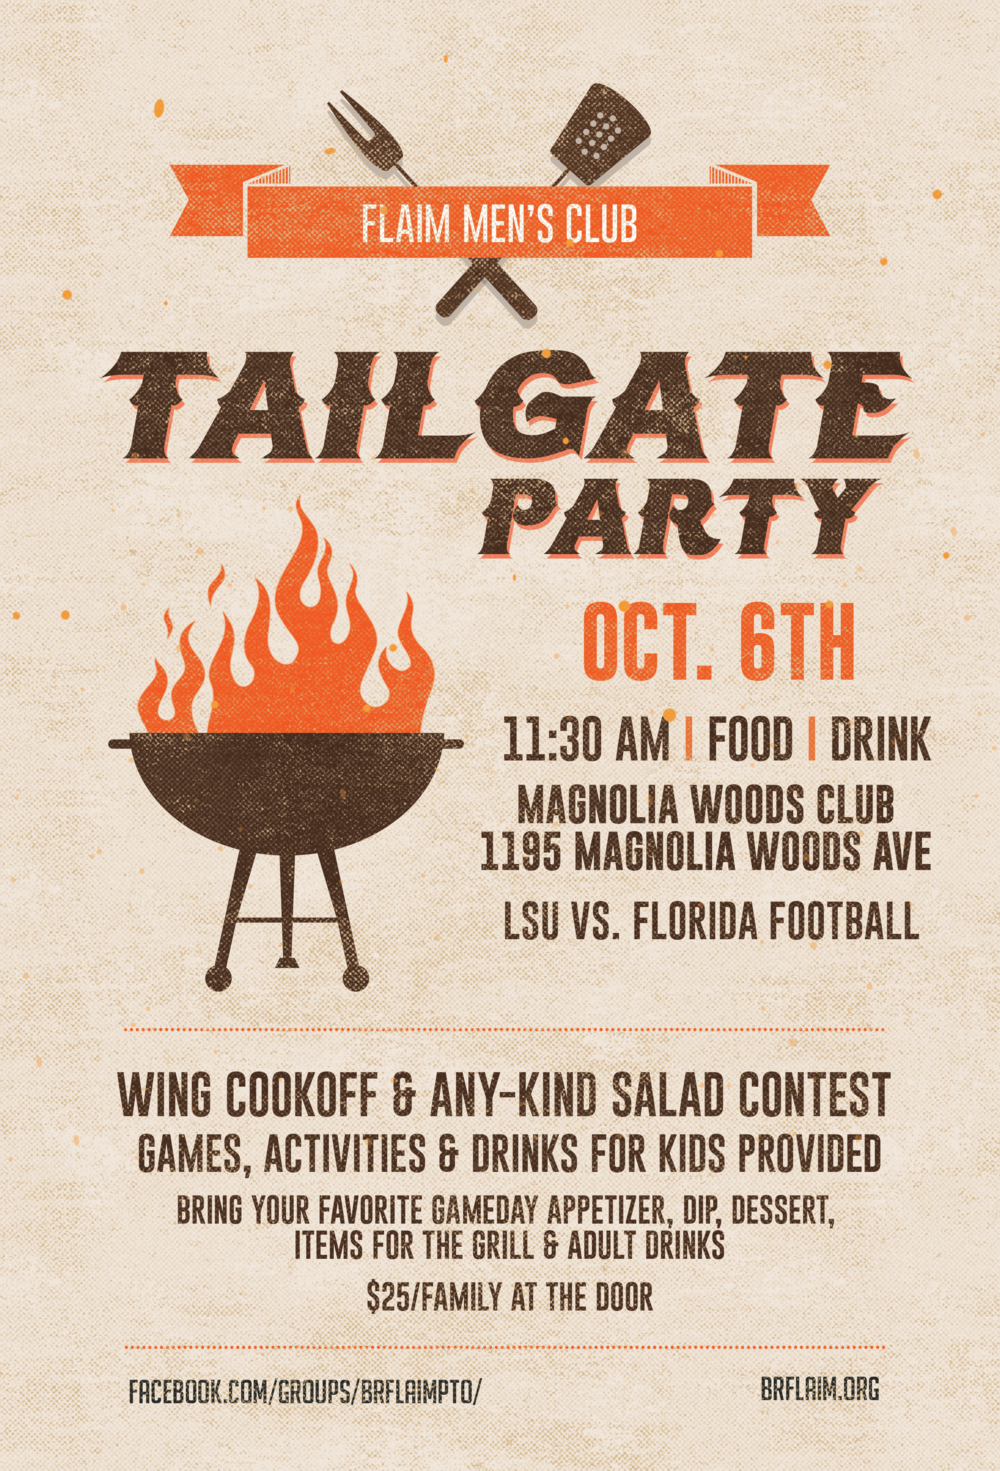 TailgateParty_Flyer_092418.png